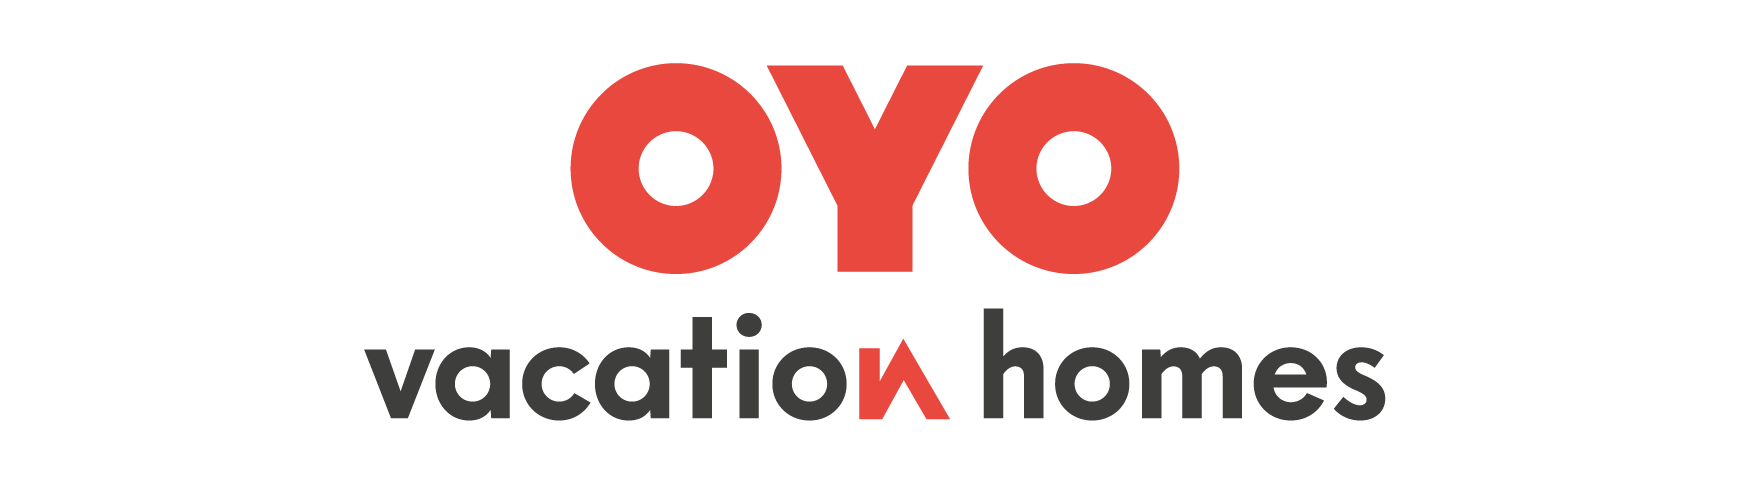 OYO VACATION HOMES LOGO